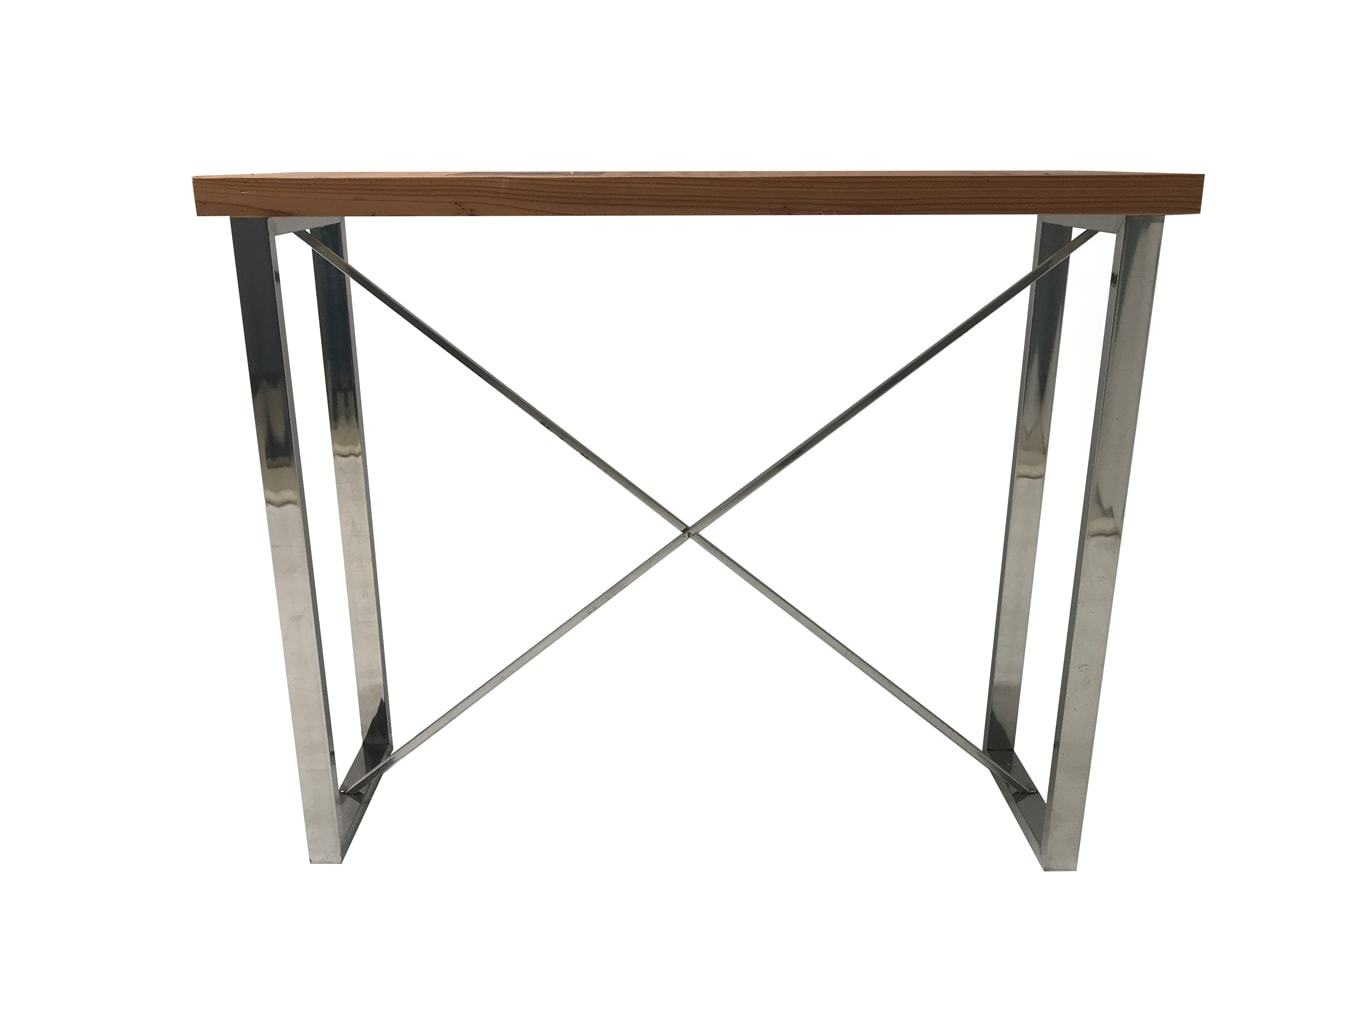 Console Table - Polished Steel X-Shape Legs And Light-Brown Wooden Top